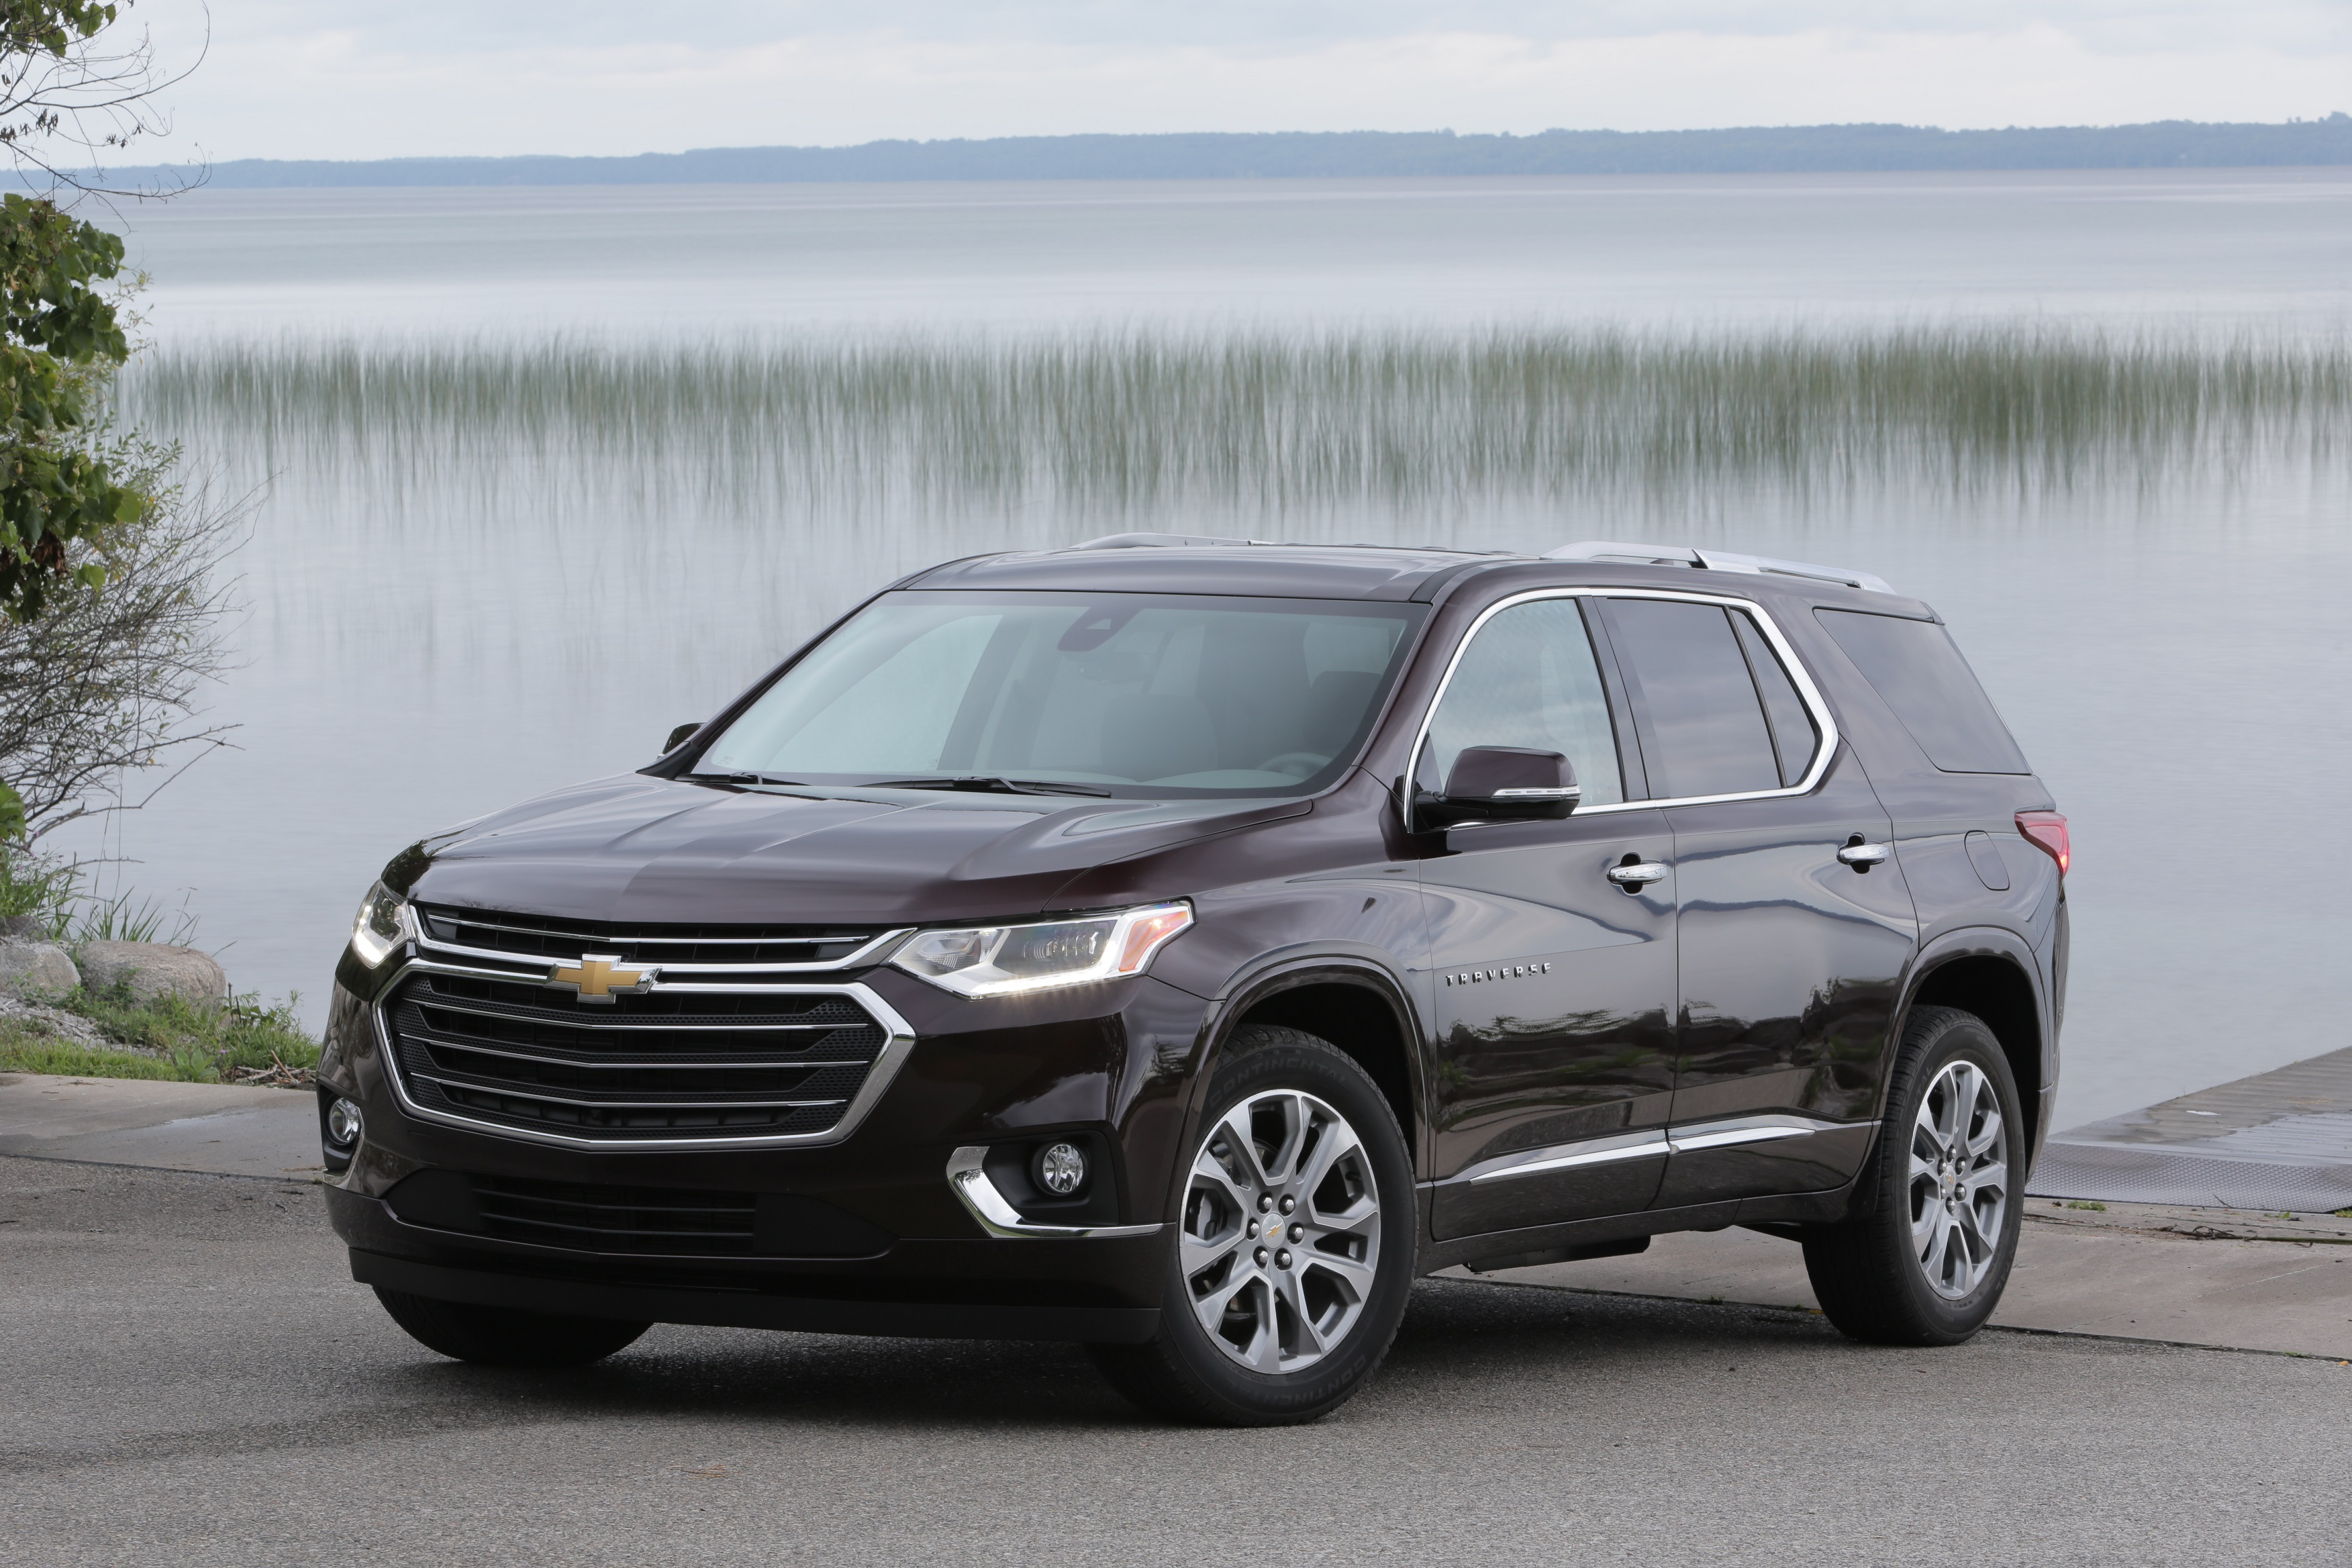 Chevrolet Owners Can Now Go Unlimited With OnStar 4G LTE